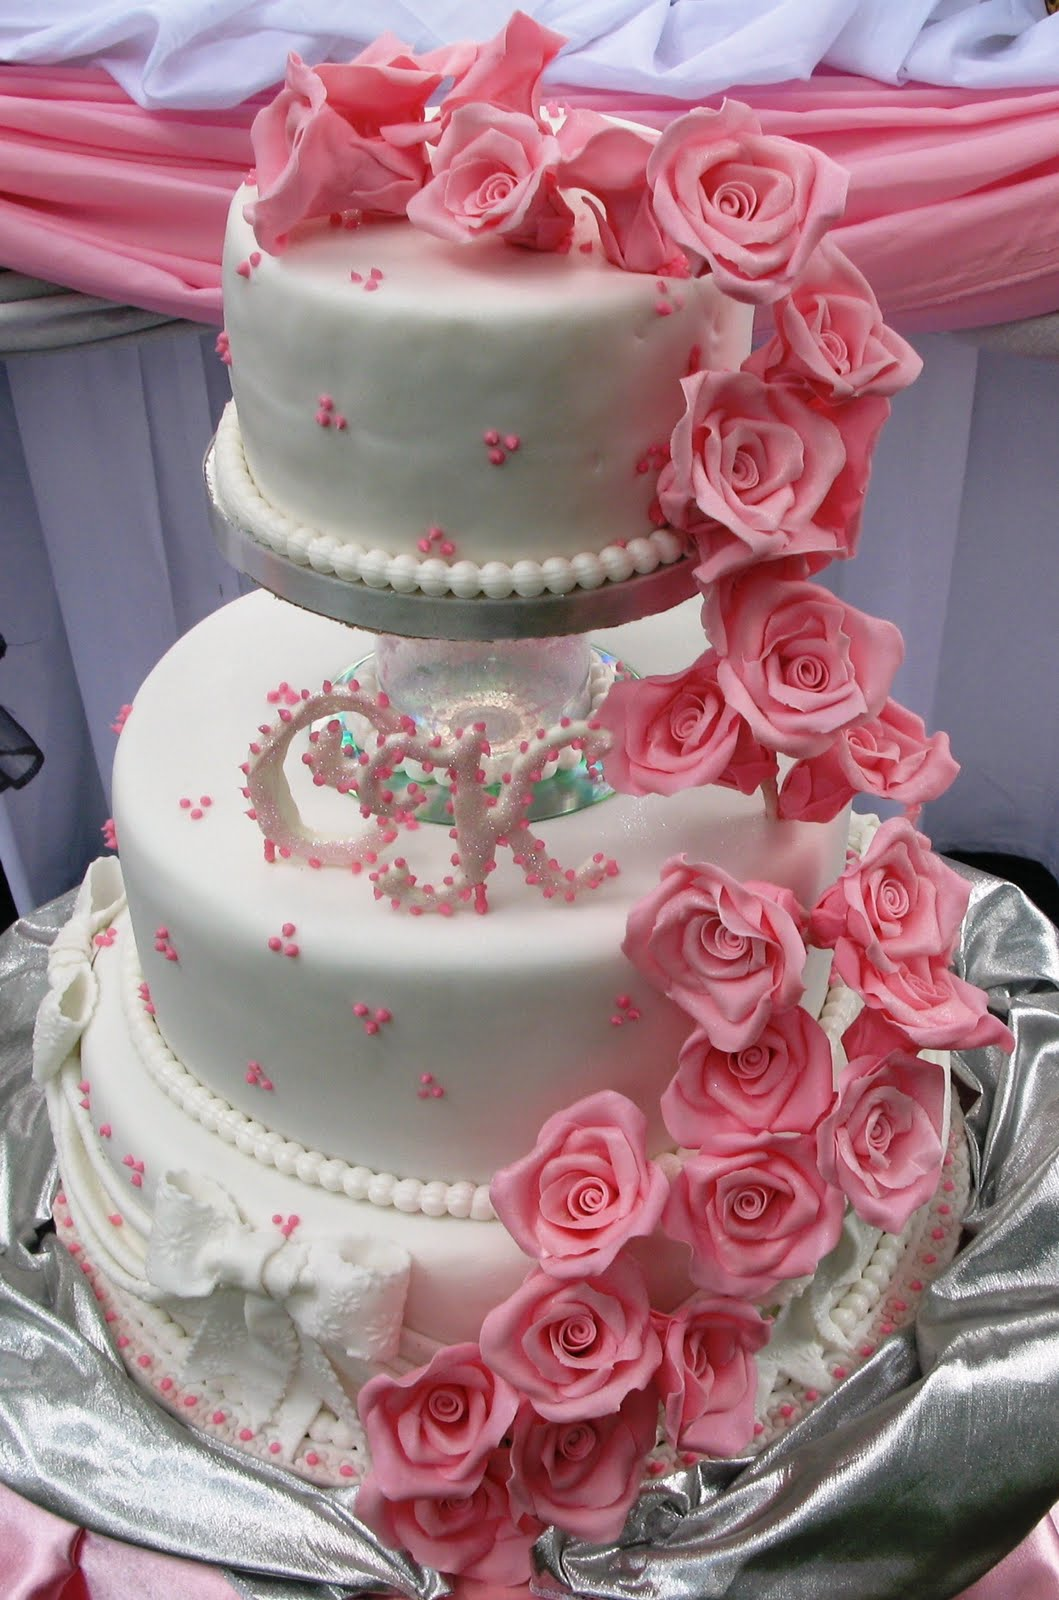 Sugarcraft by Soni: Three - Tier Wedding Cake & Roses